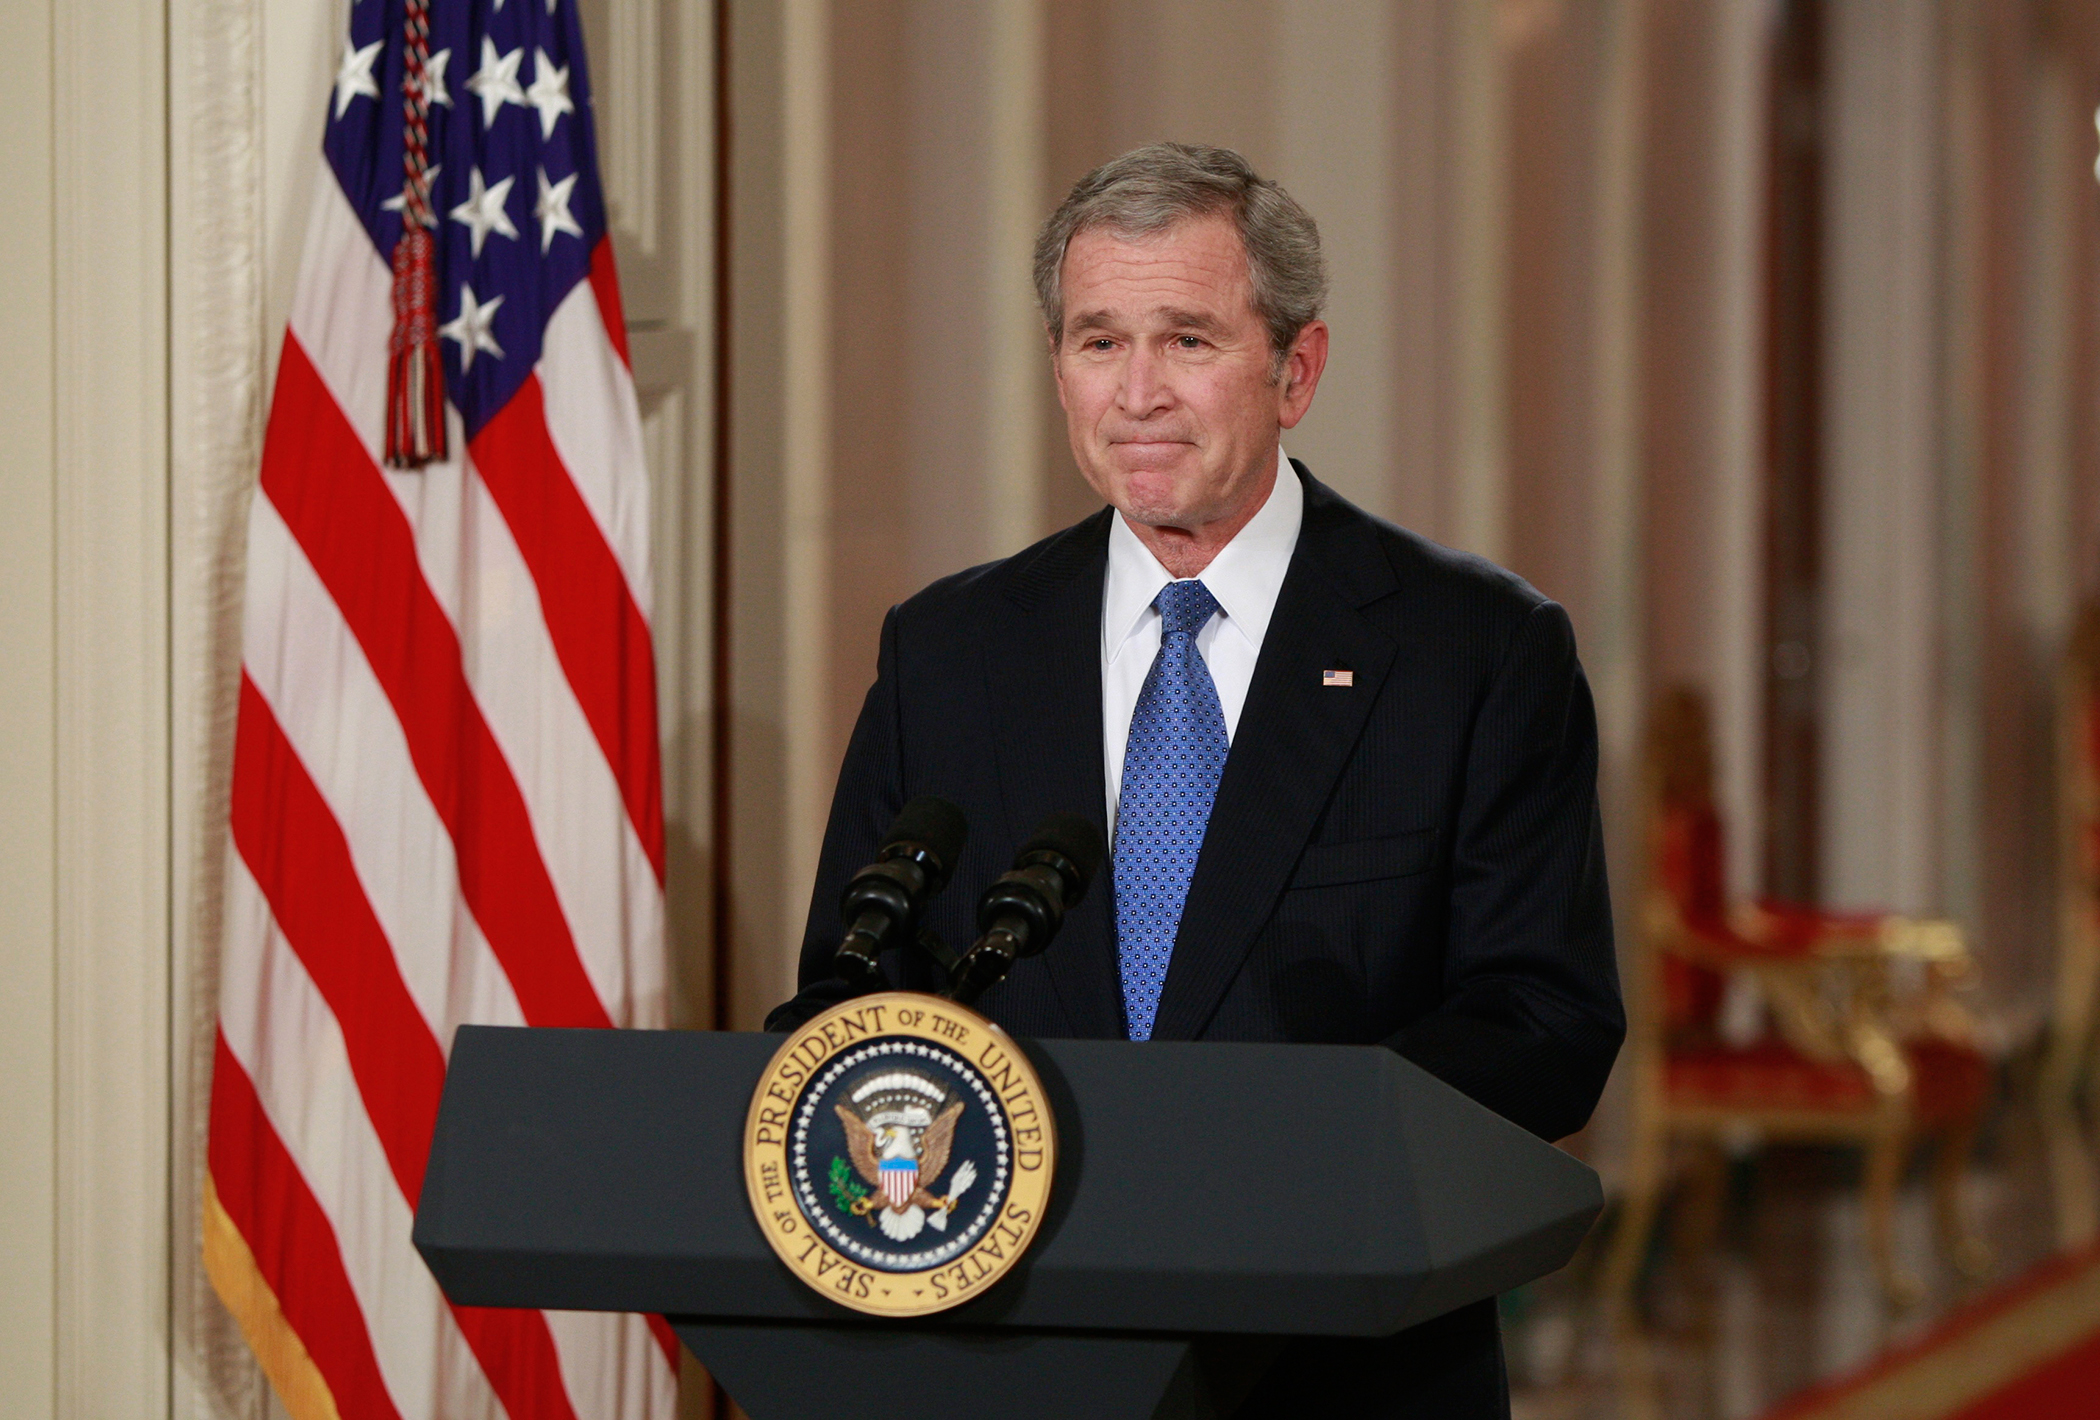 U.S. President George W. Bush completes his final live television address to the nation from the East Room of the White House in Washington January 15, 2009.